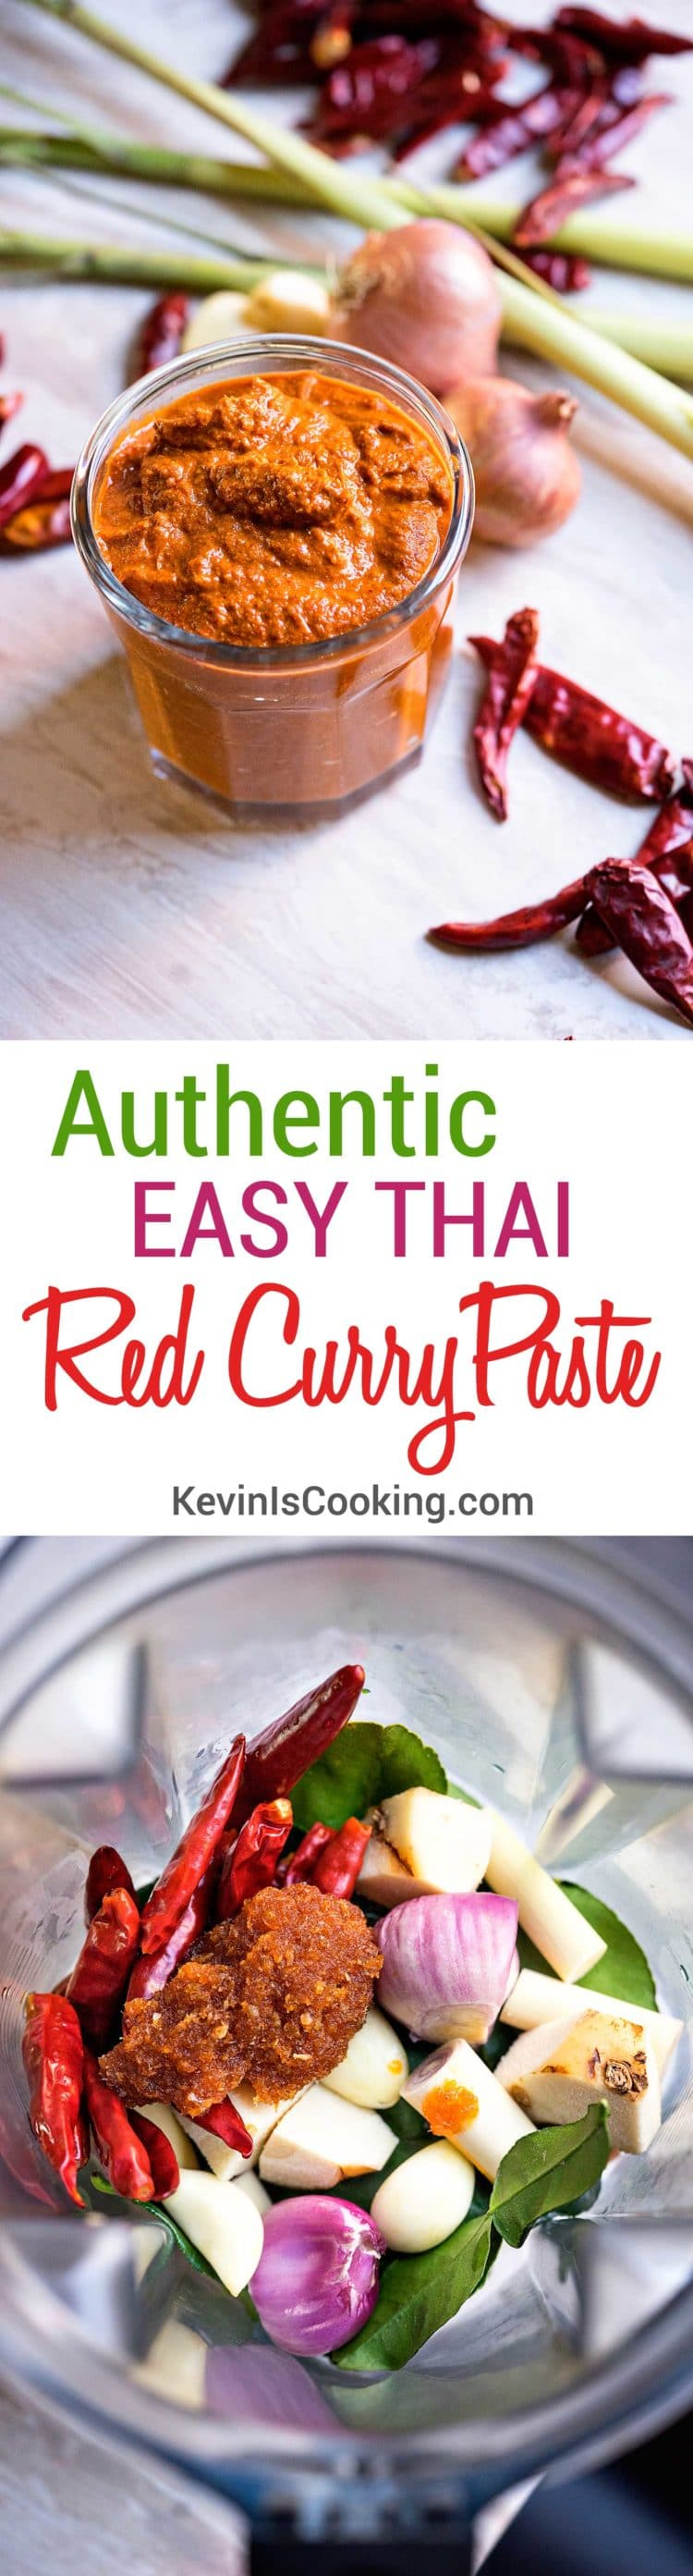 If authentic Thai is what you're looking for than you need this Easy Thai Red Curry Paste. With only 7 ingredients and 1 massive amount of POW this delivers!